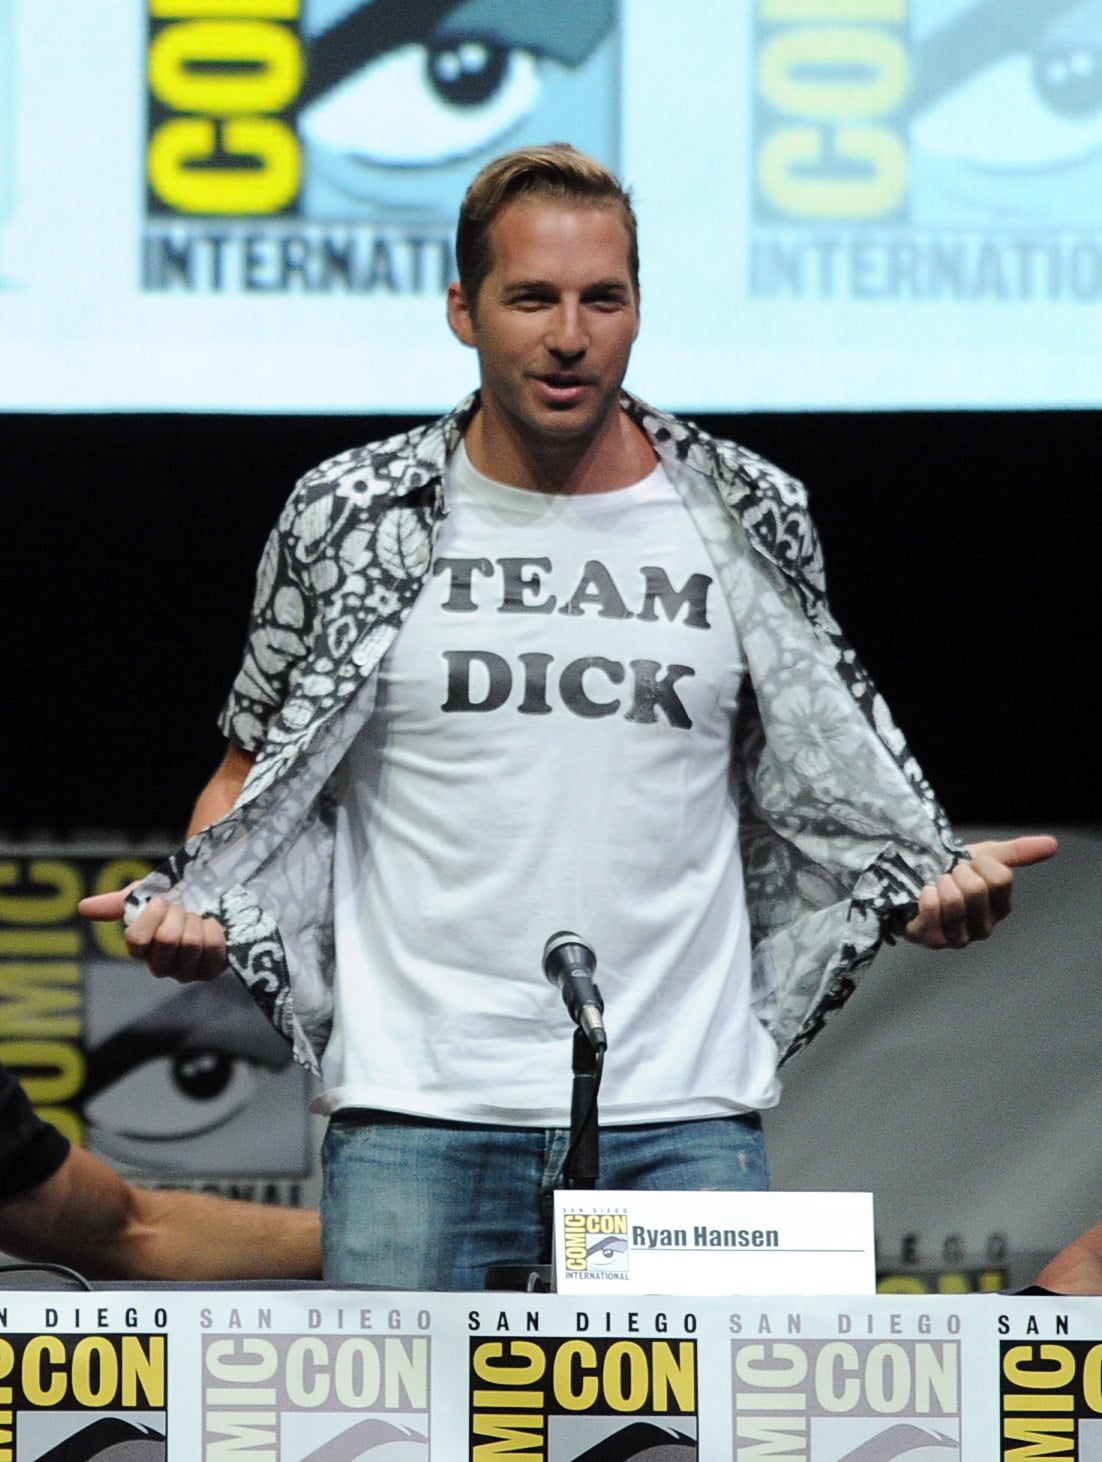 Ryan Hansen wore a hilarious t-shirt to the Veronica Mars speaker panel and presentation.